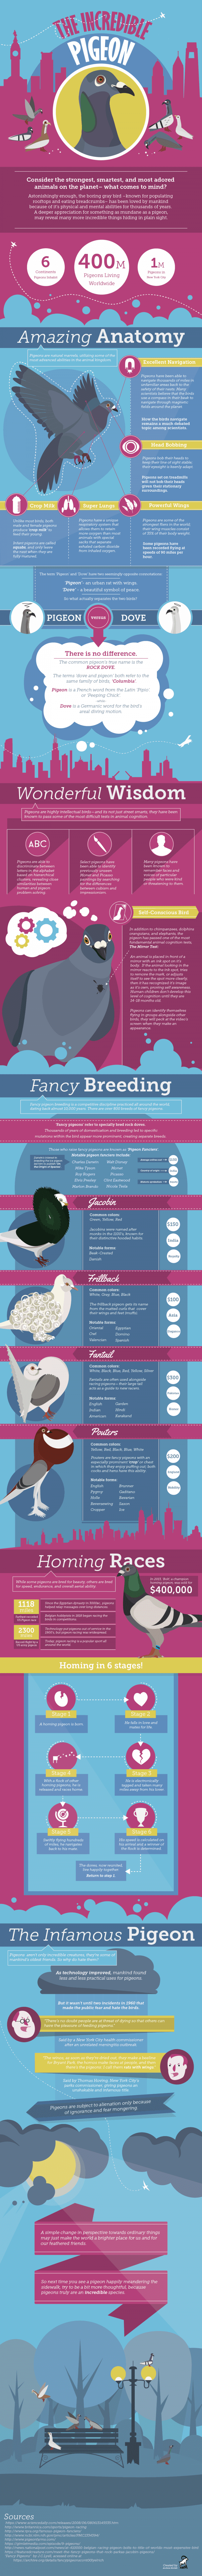 http://www.dailyinfographic.com/wp-content/uploads/2016/07/IncrediblePigeons_3-01-700x8912.png